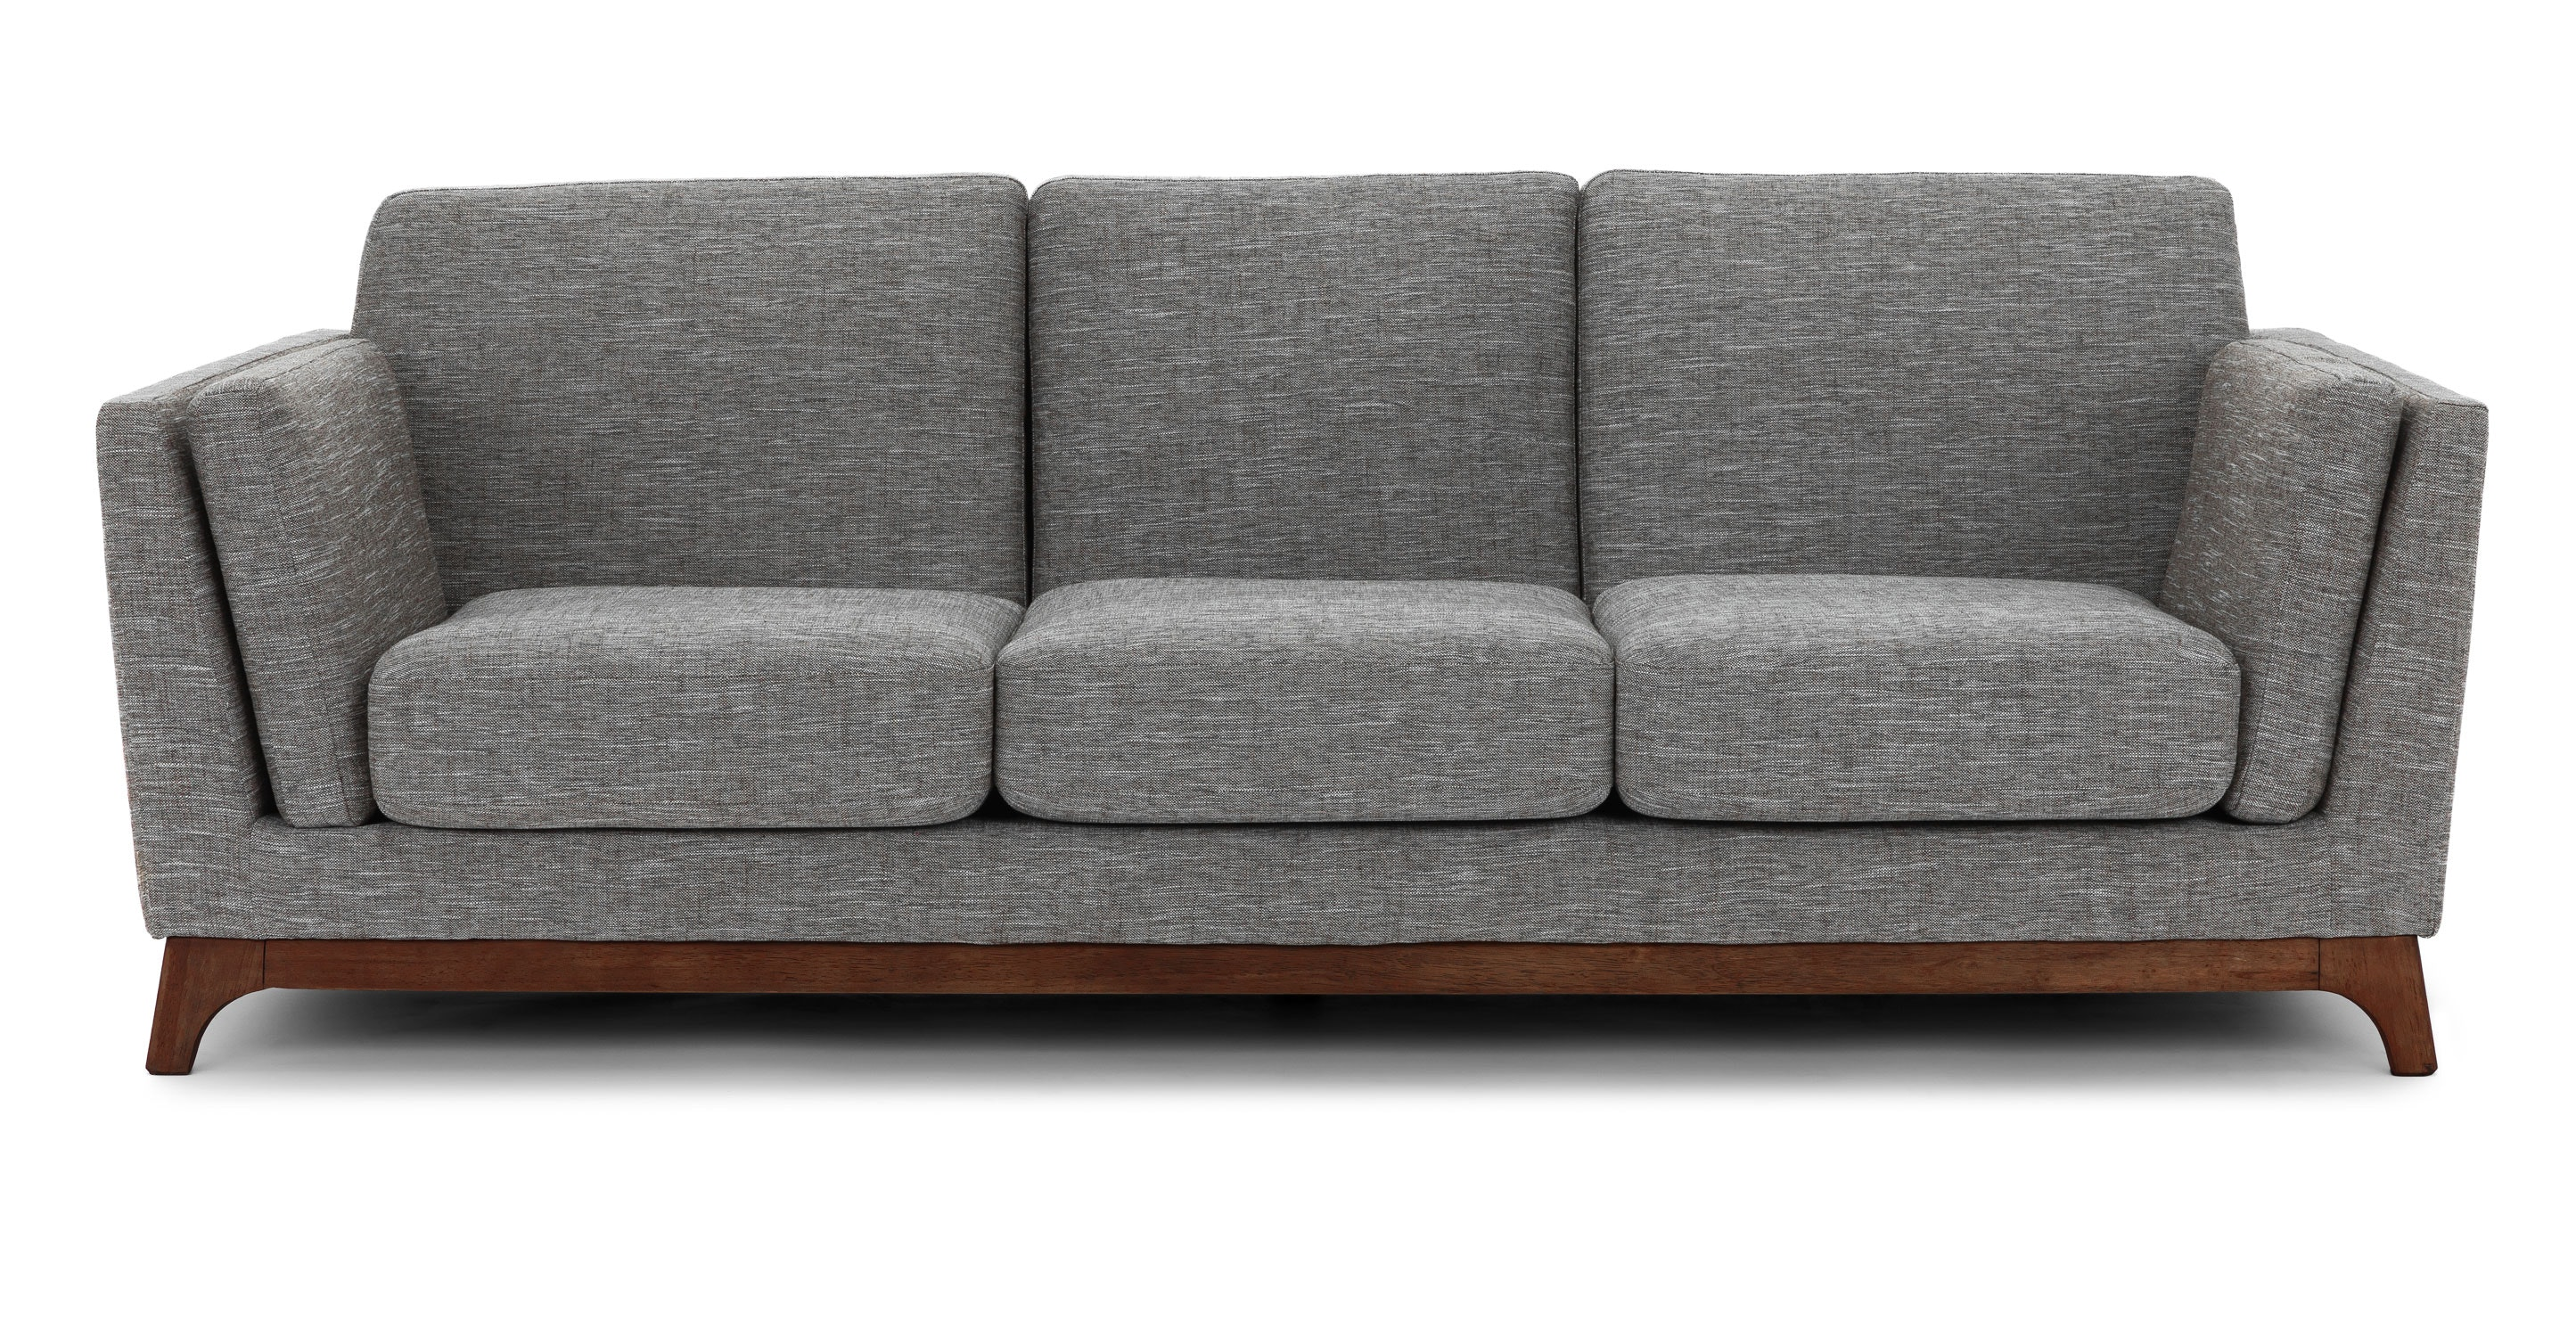 image24863 jpg w 2890 on gray couch BHAGCVS